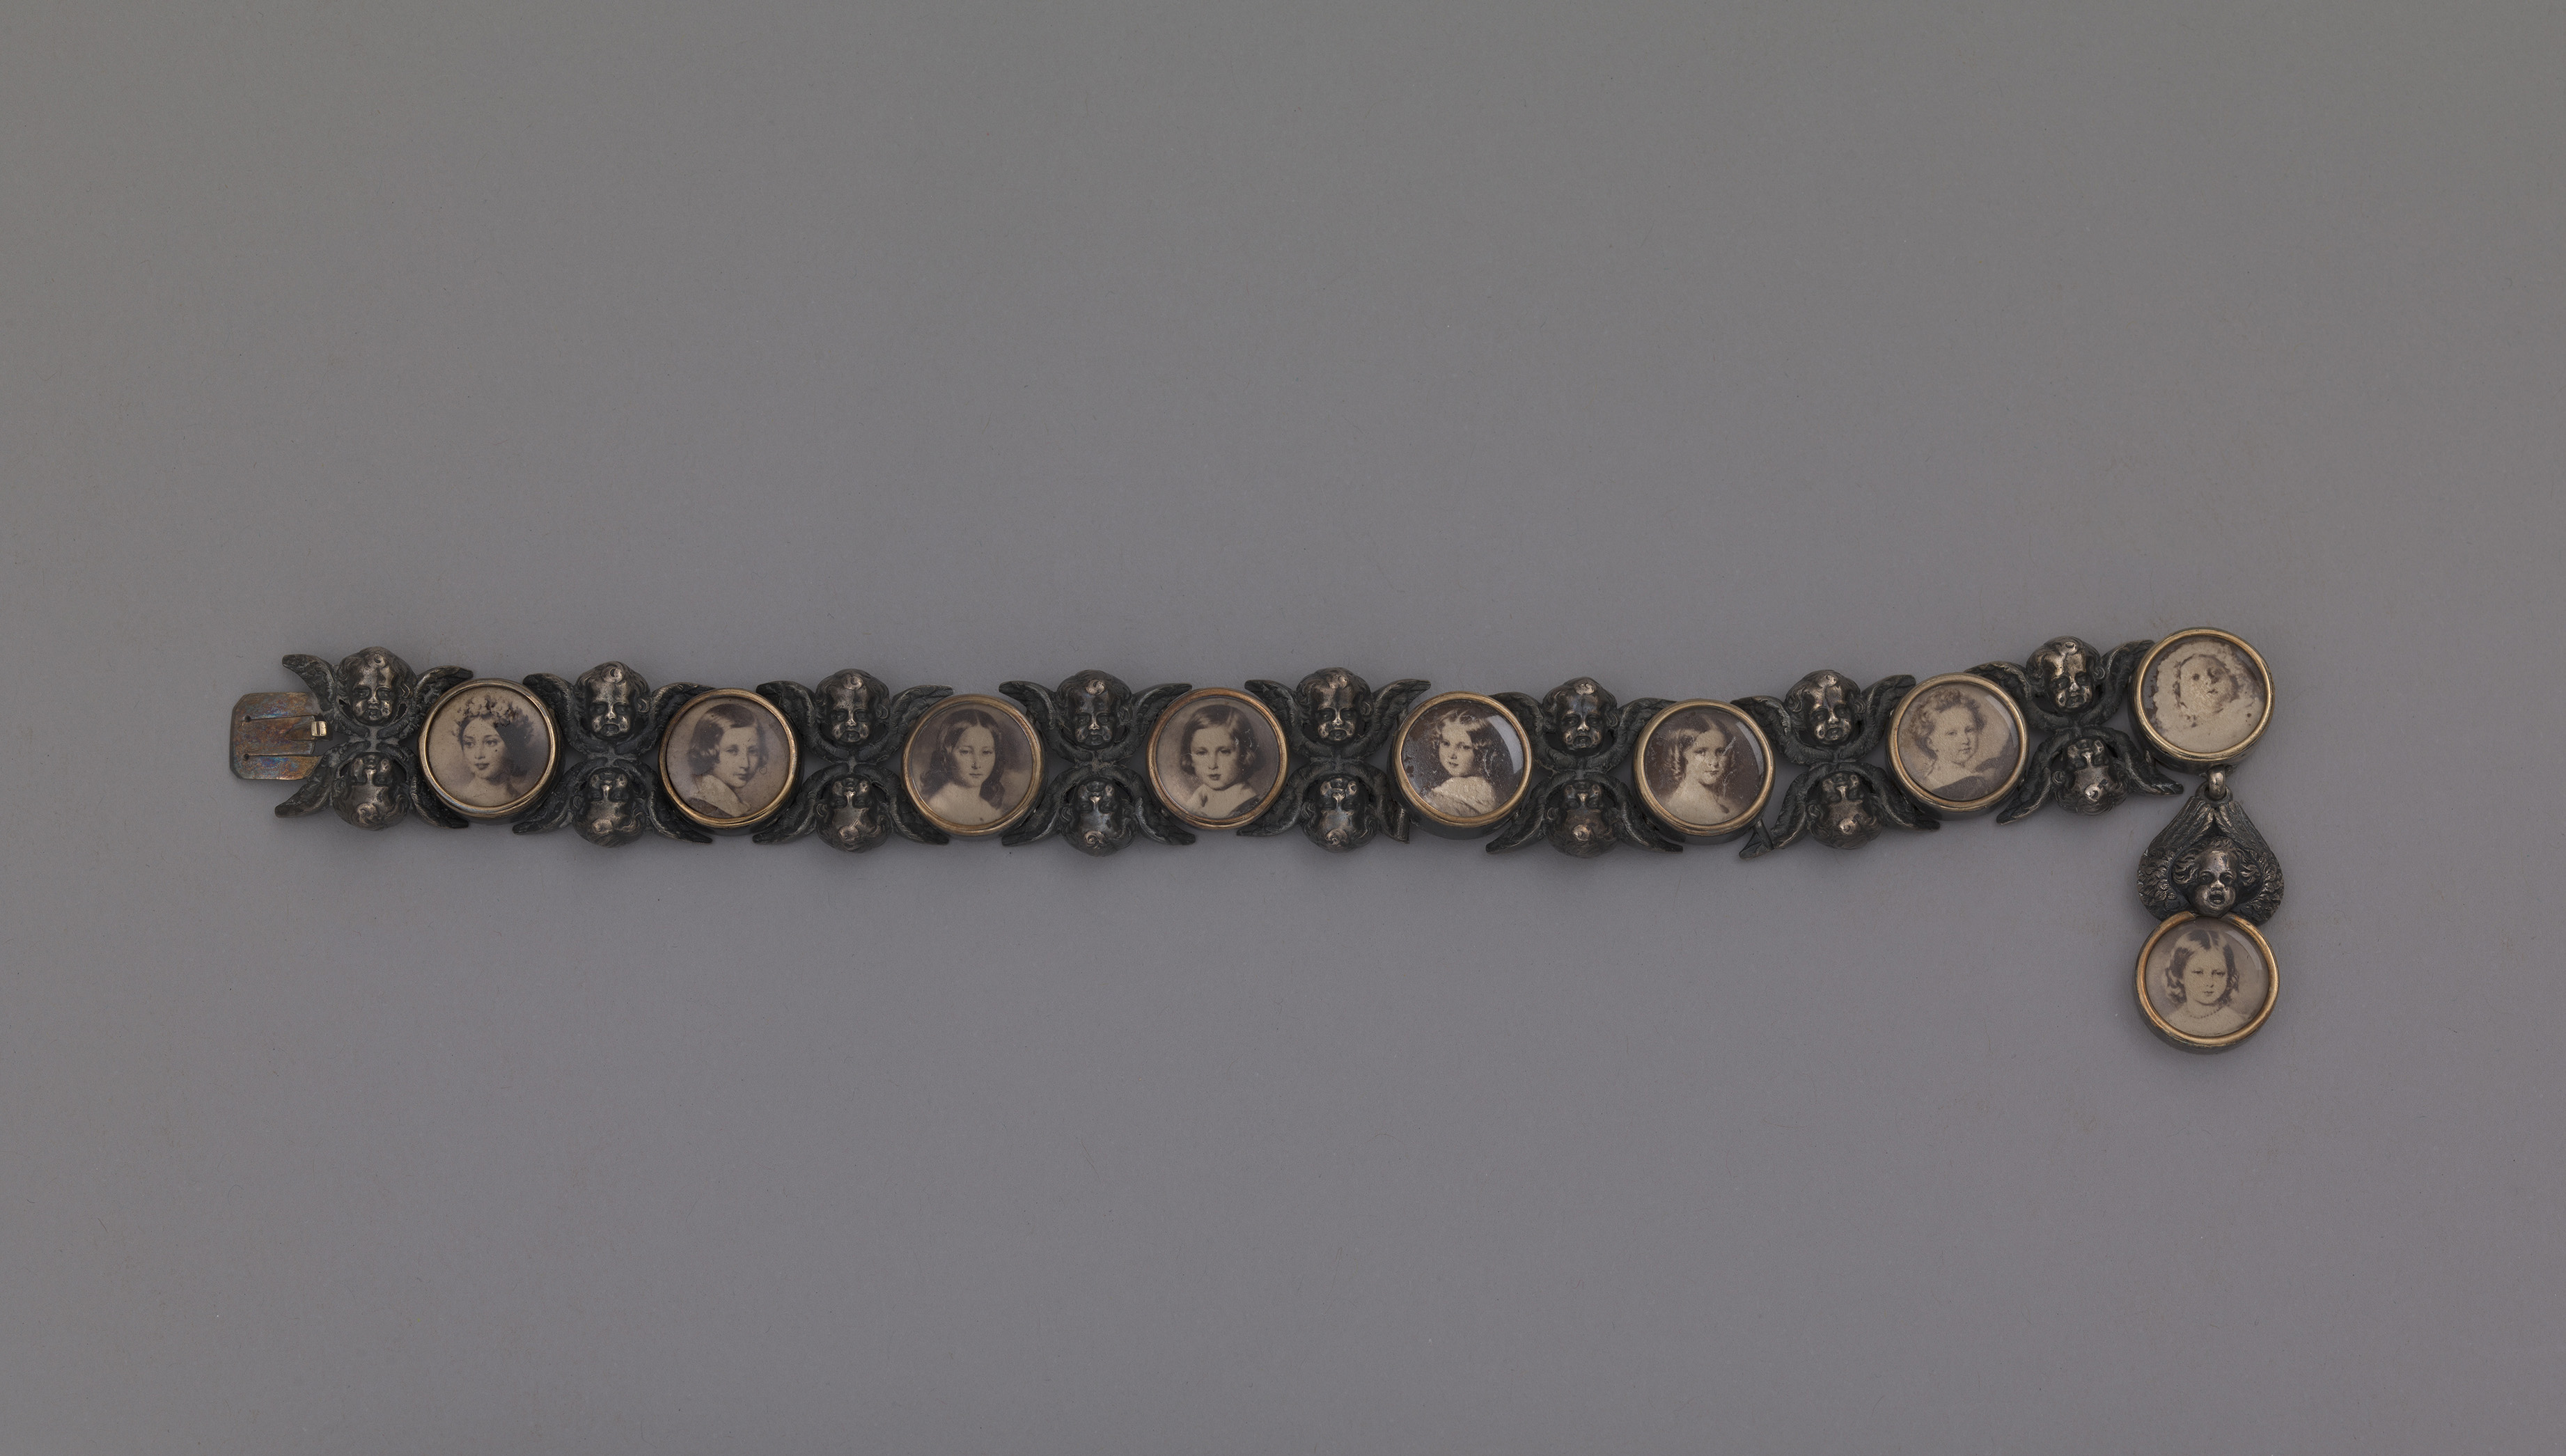 Bracelet given to Victoria by Albert